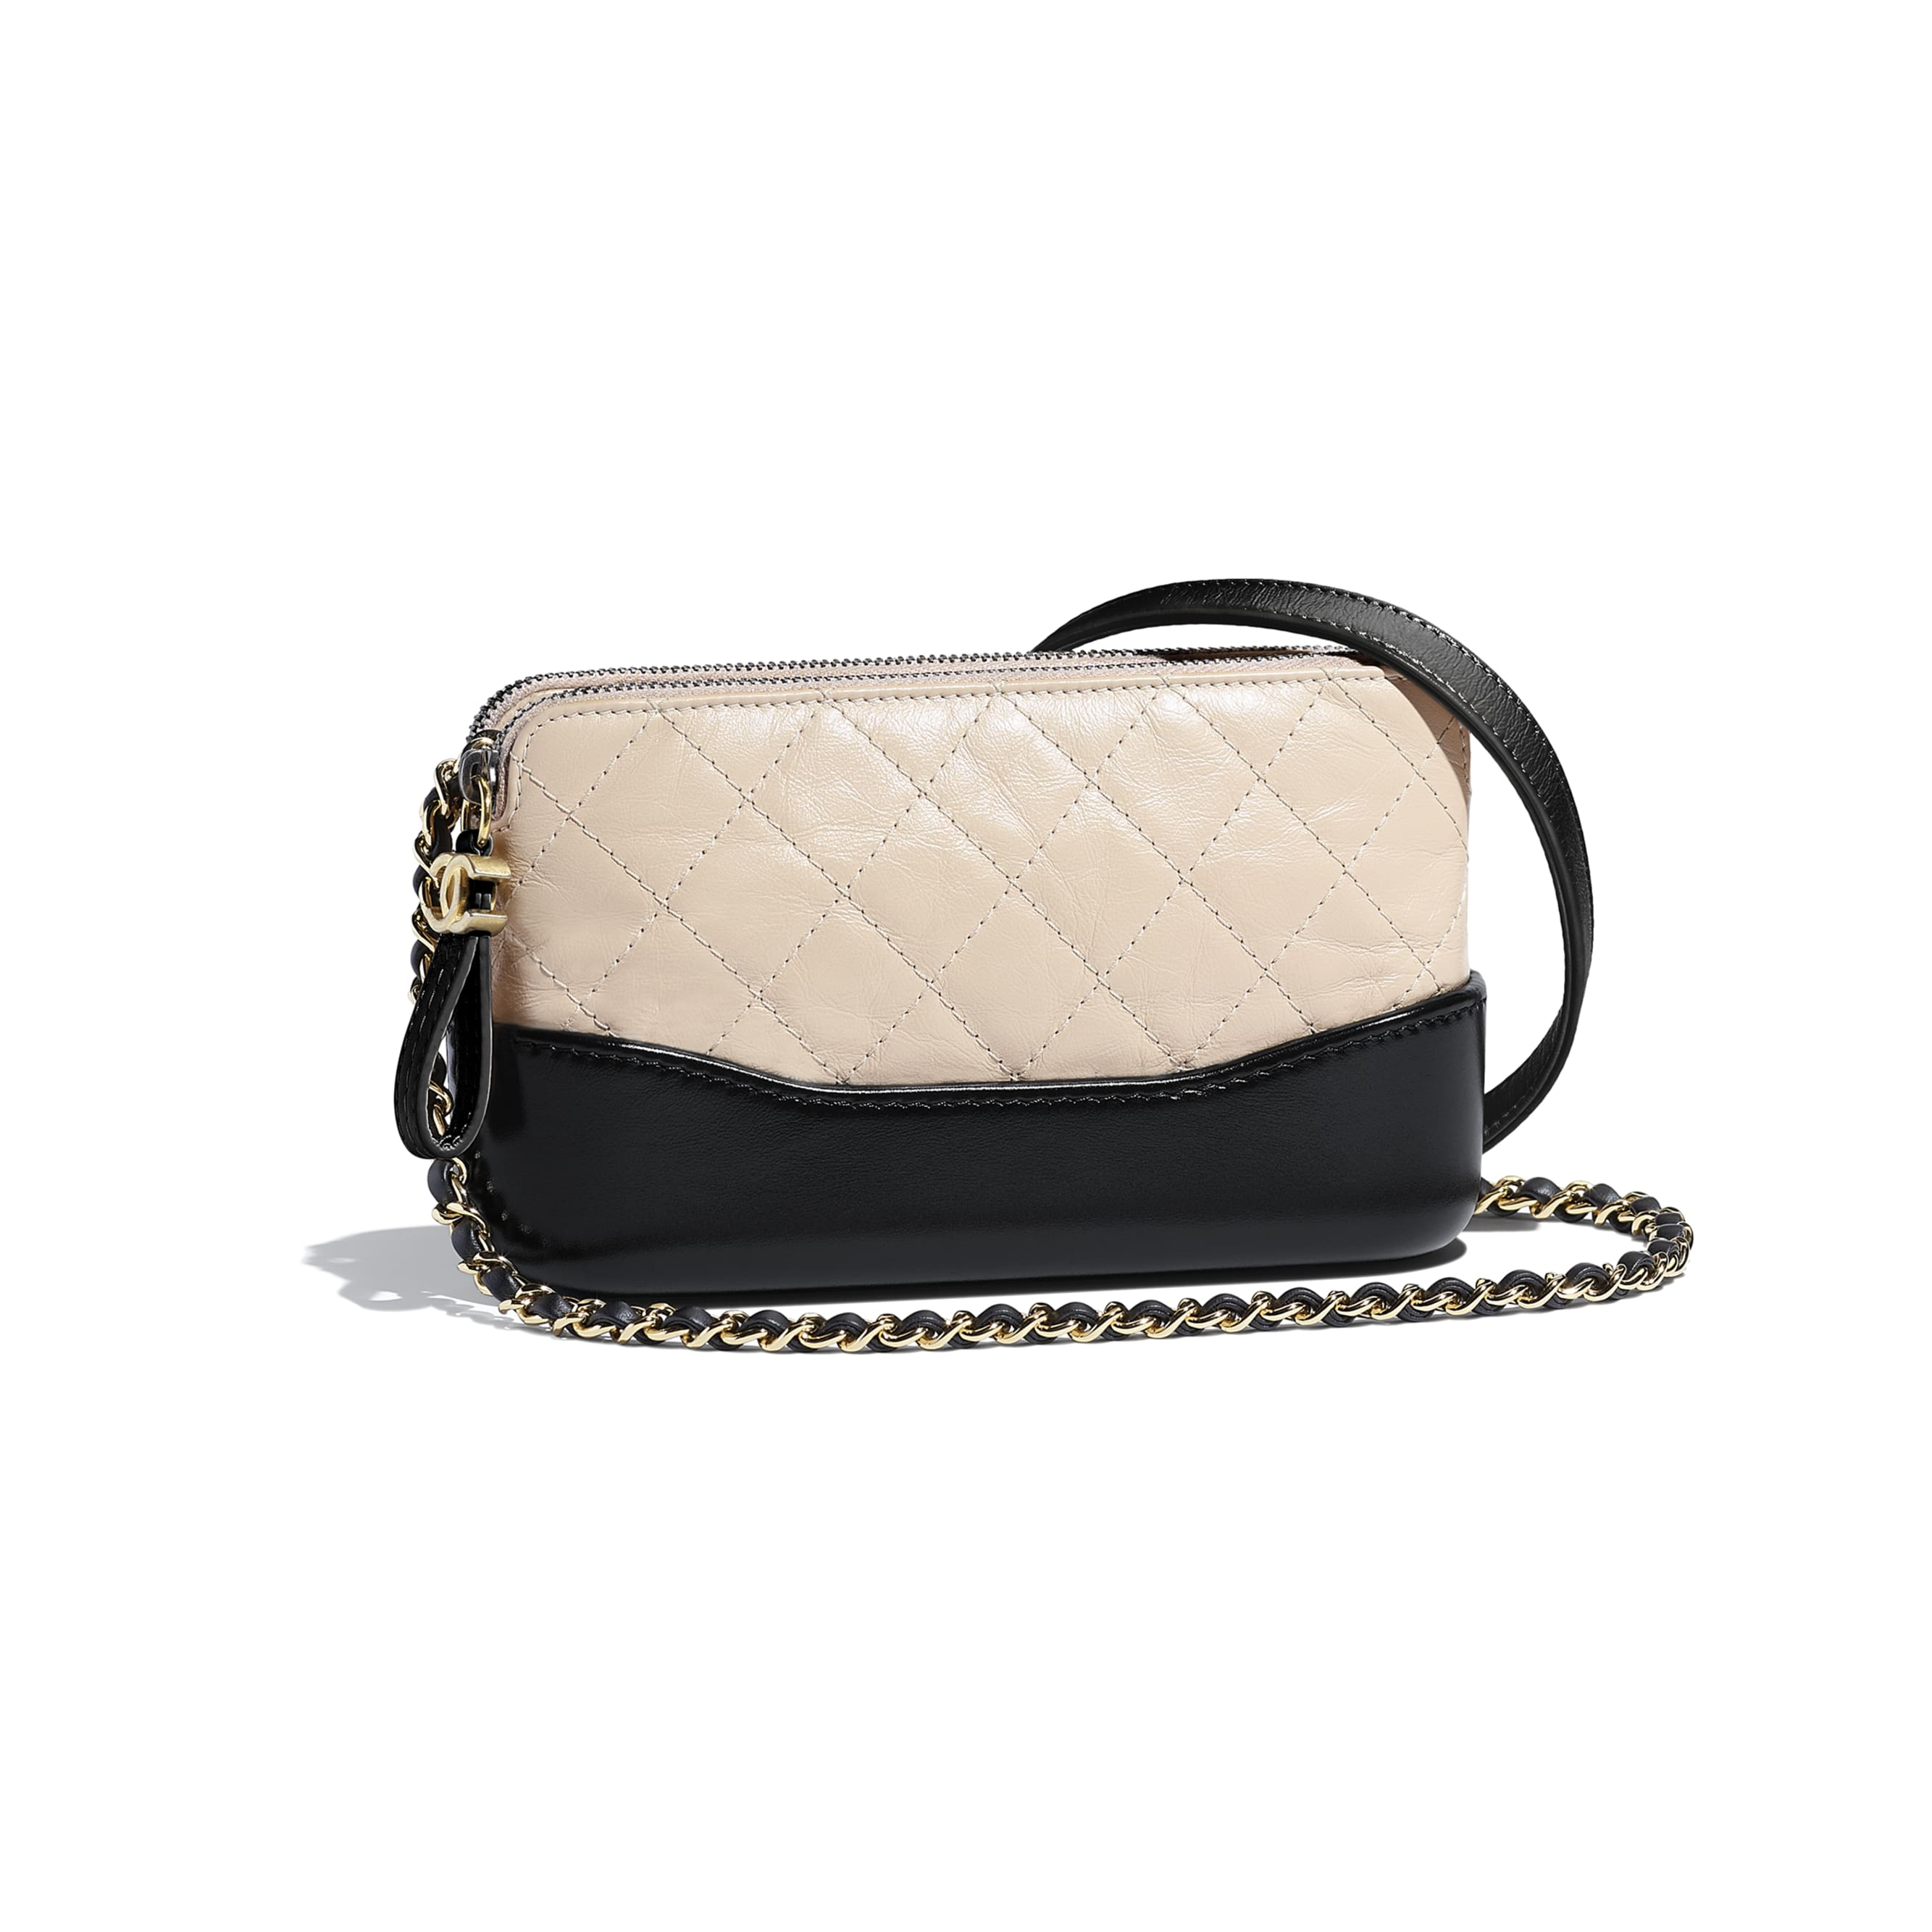 Clutch With Chain - Beige & Black - Aged Calfskin, Smooth Calfskin, Silver-Tone & Gold-Tone Metal - Default view - see standard sized version